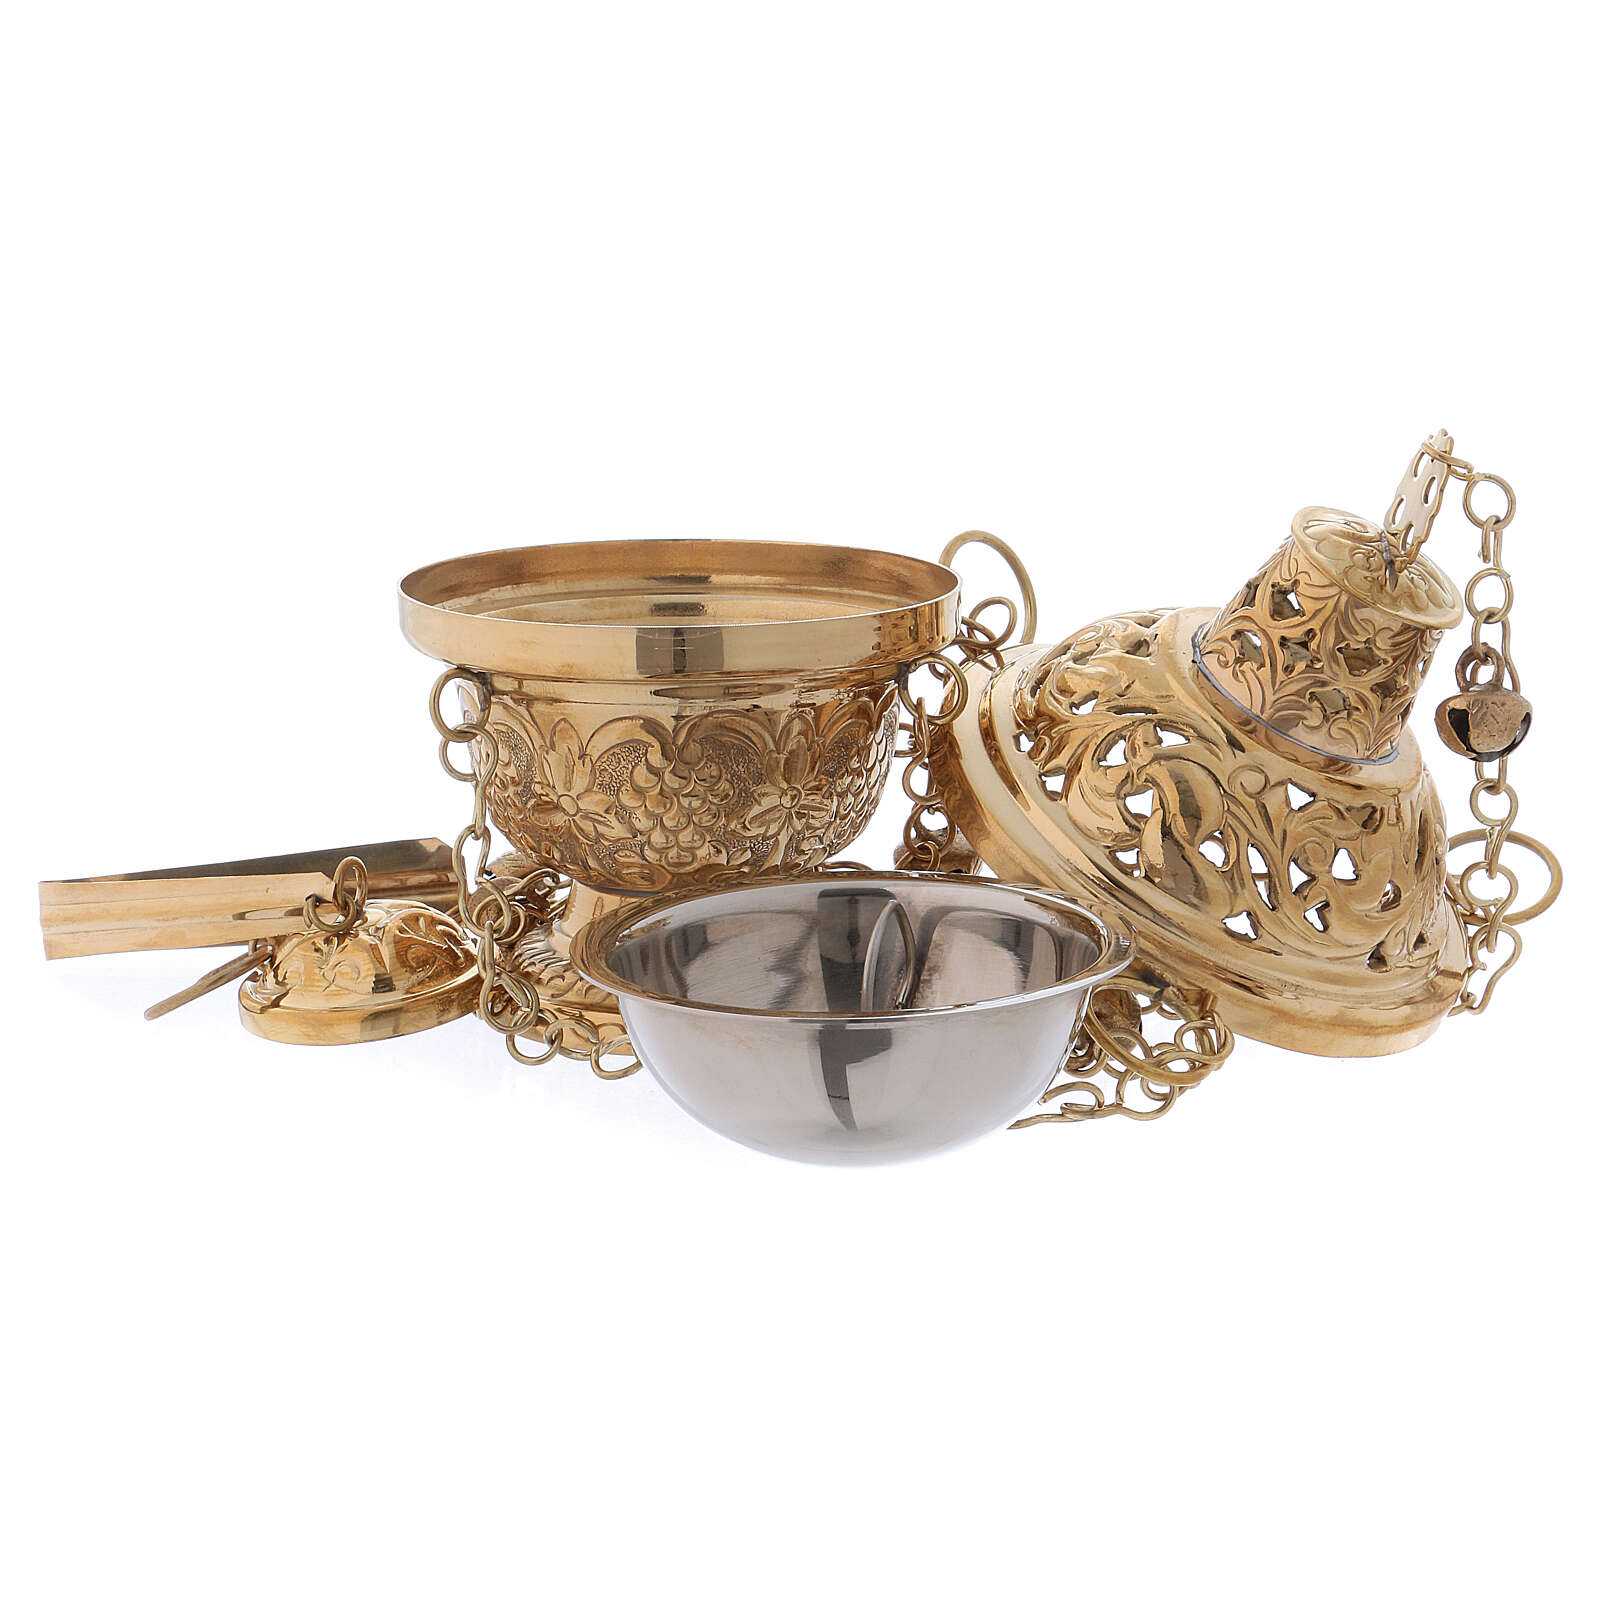 Thurible in Orthodox style in polished gold plated brass h 6 1/4 in 3